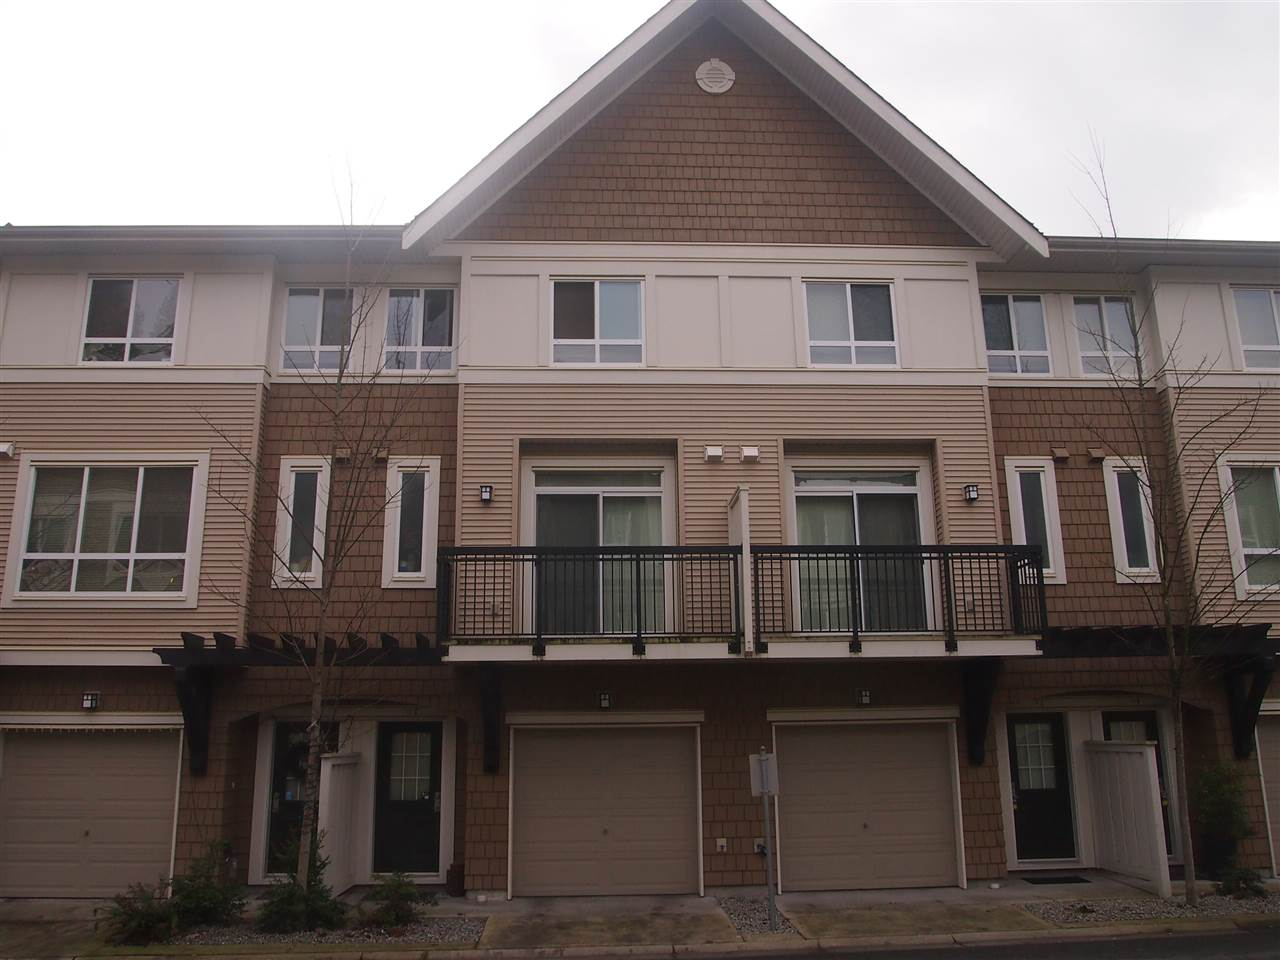 28 1305 SOBALL STREET - Burke Mountain Townhouse for sale, 3 Bedrooms (R2484828) - #1